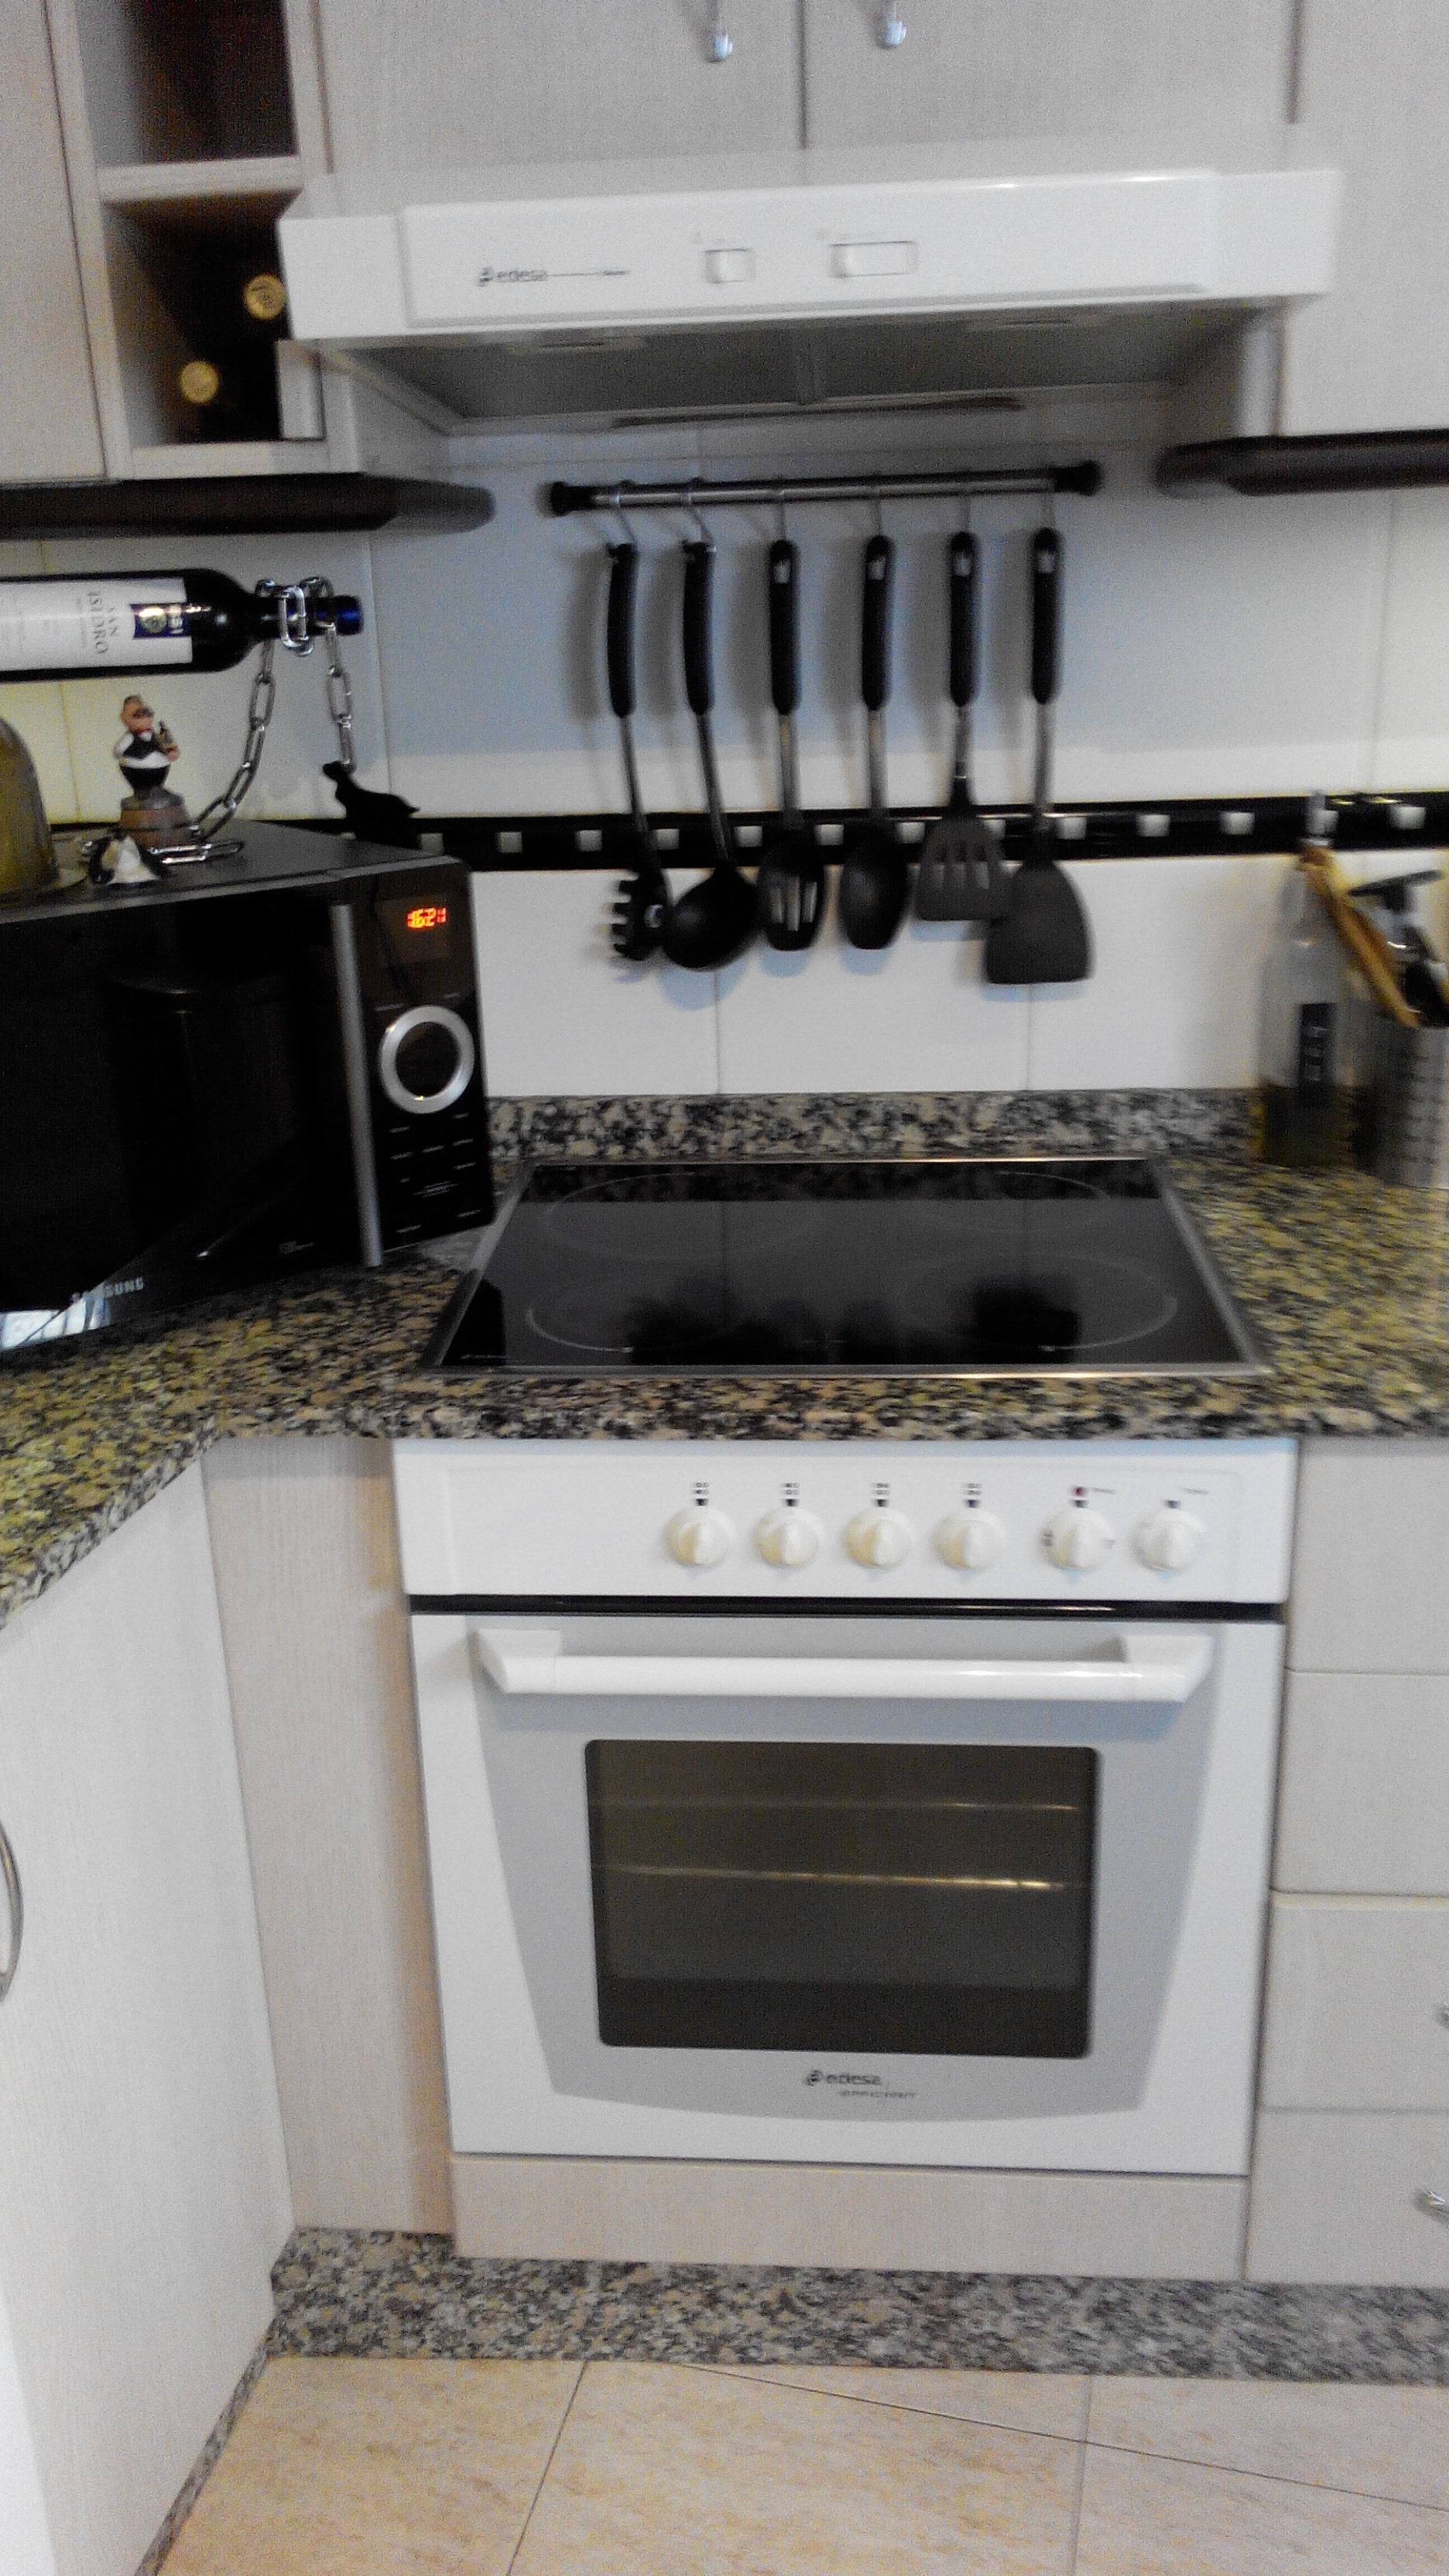 For sale: Edesa Oven, Hob & Extractor